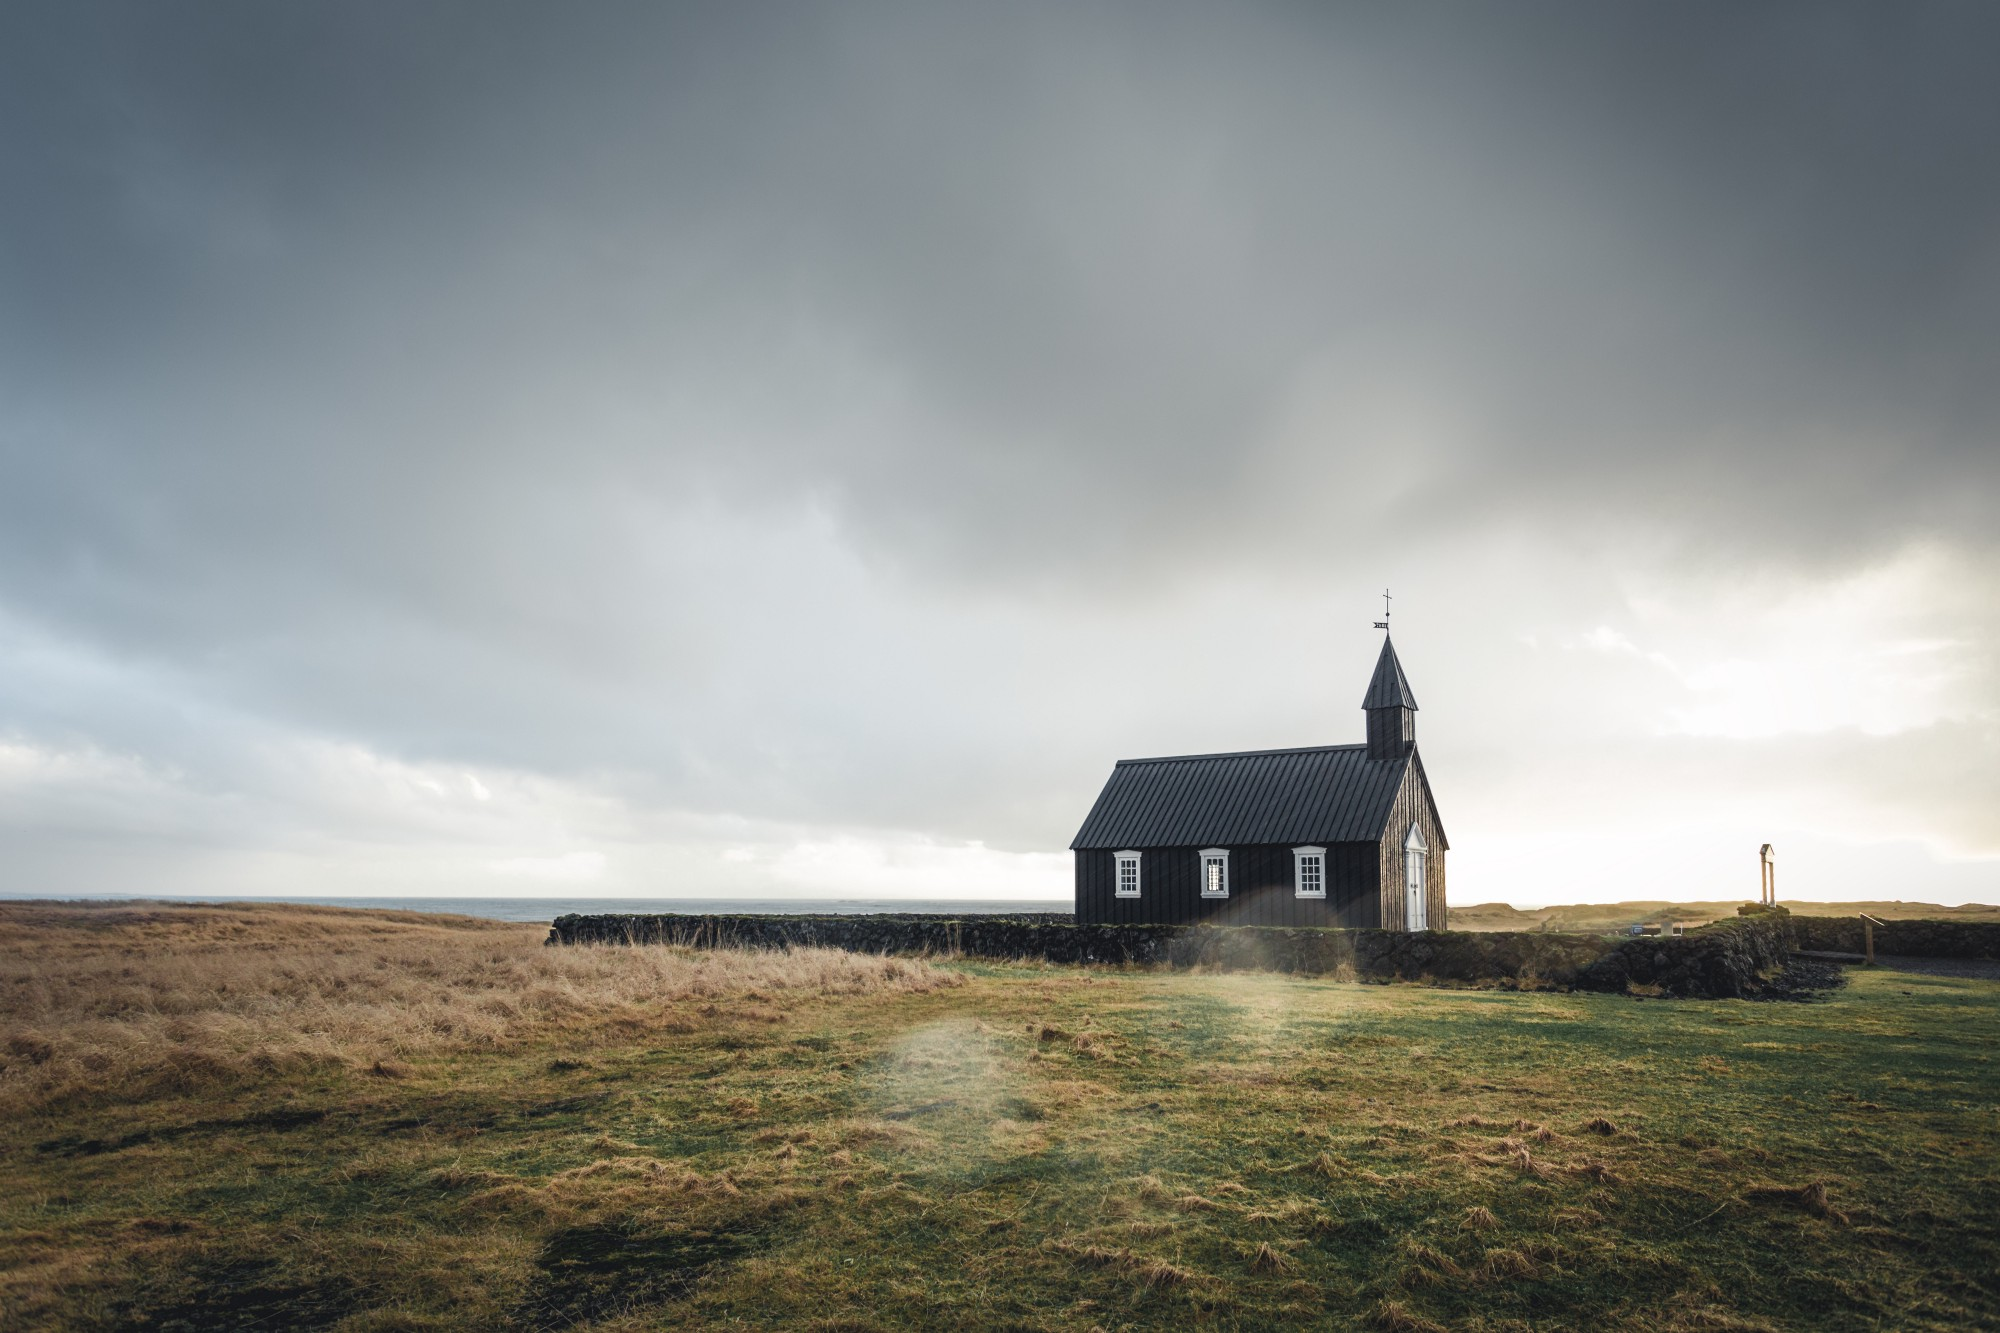 church in a field. We are not to be conformed to the world